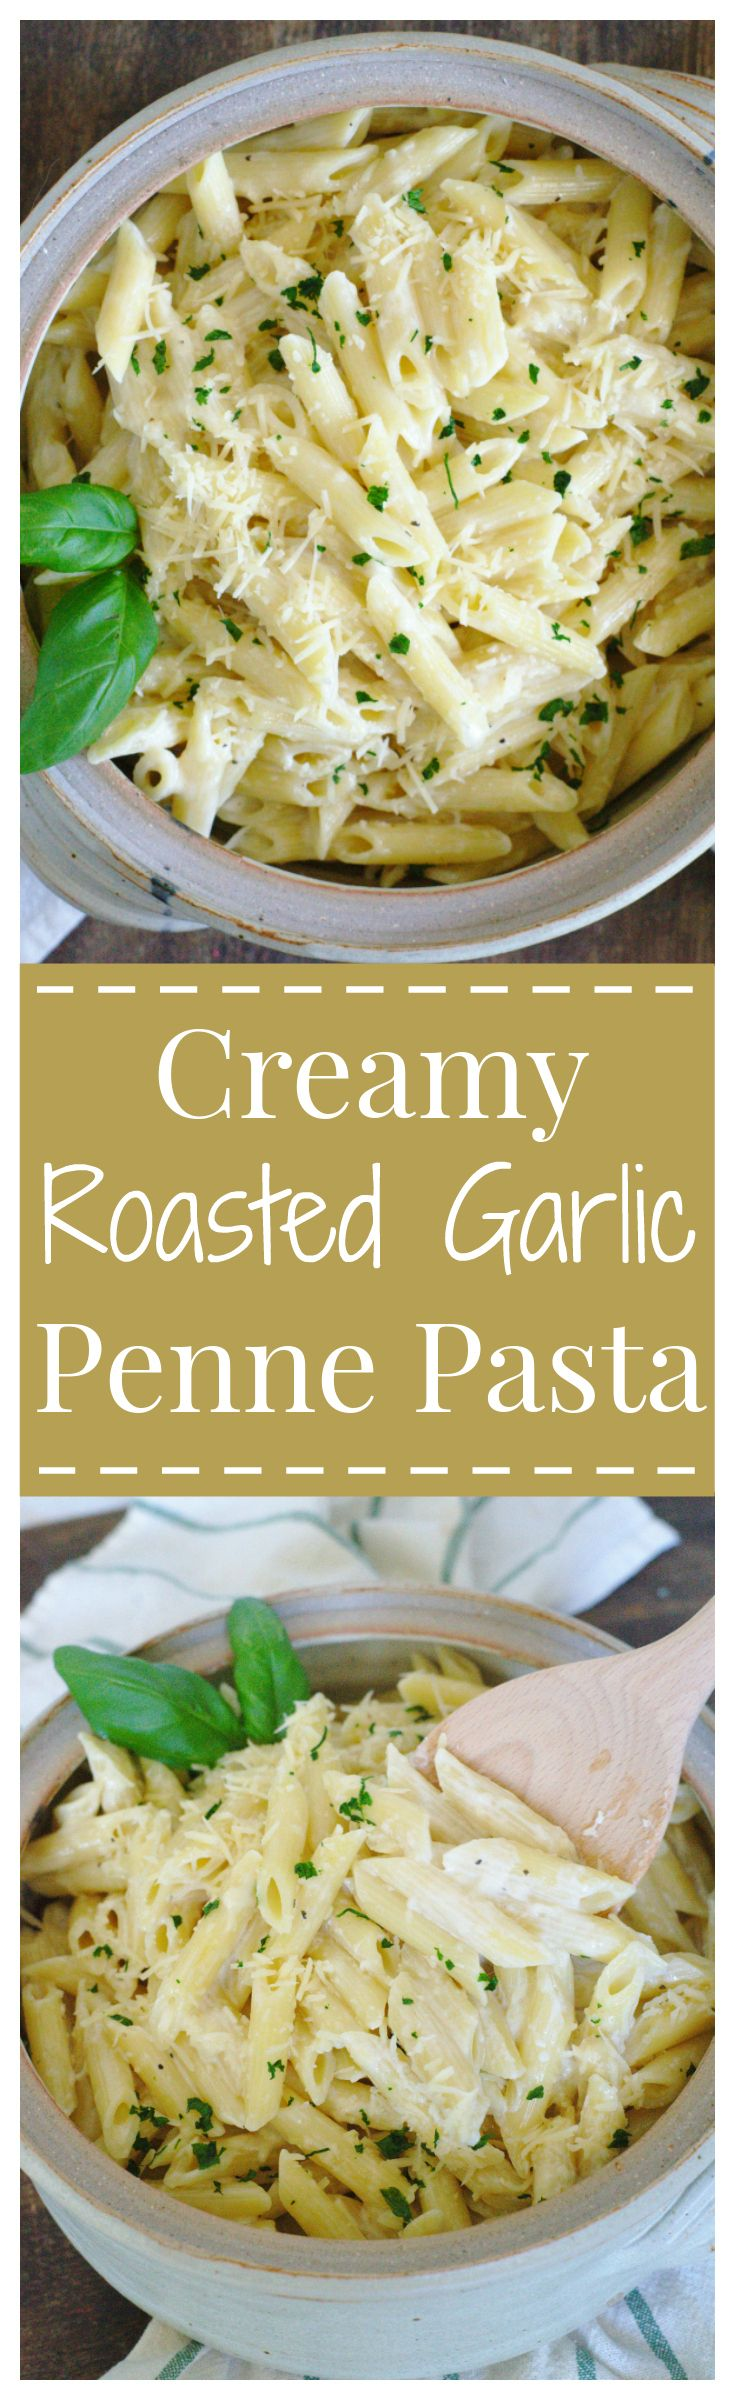 Creamy Roasted Garlic Penne Pasta – A quick and easy 30 minute meal packed full of flavor! A creamy roasted garlic sauce over penne pasta!